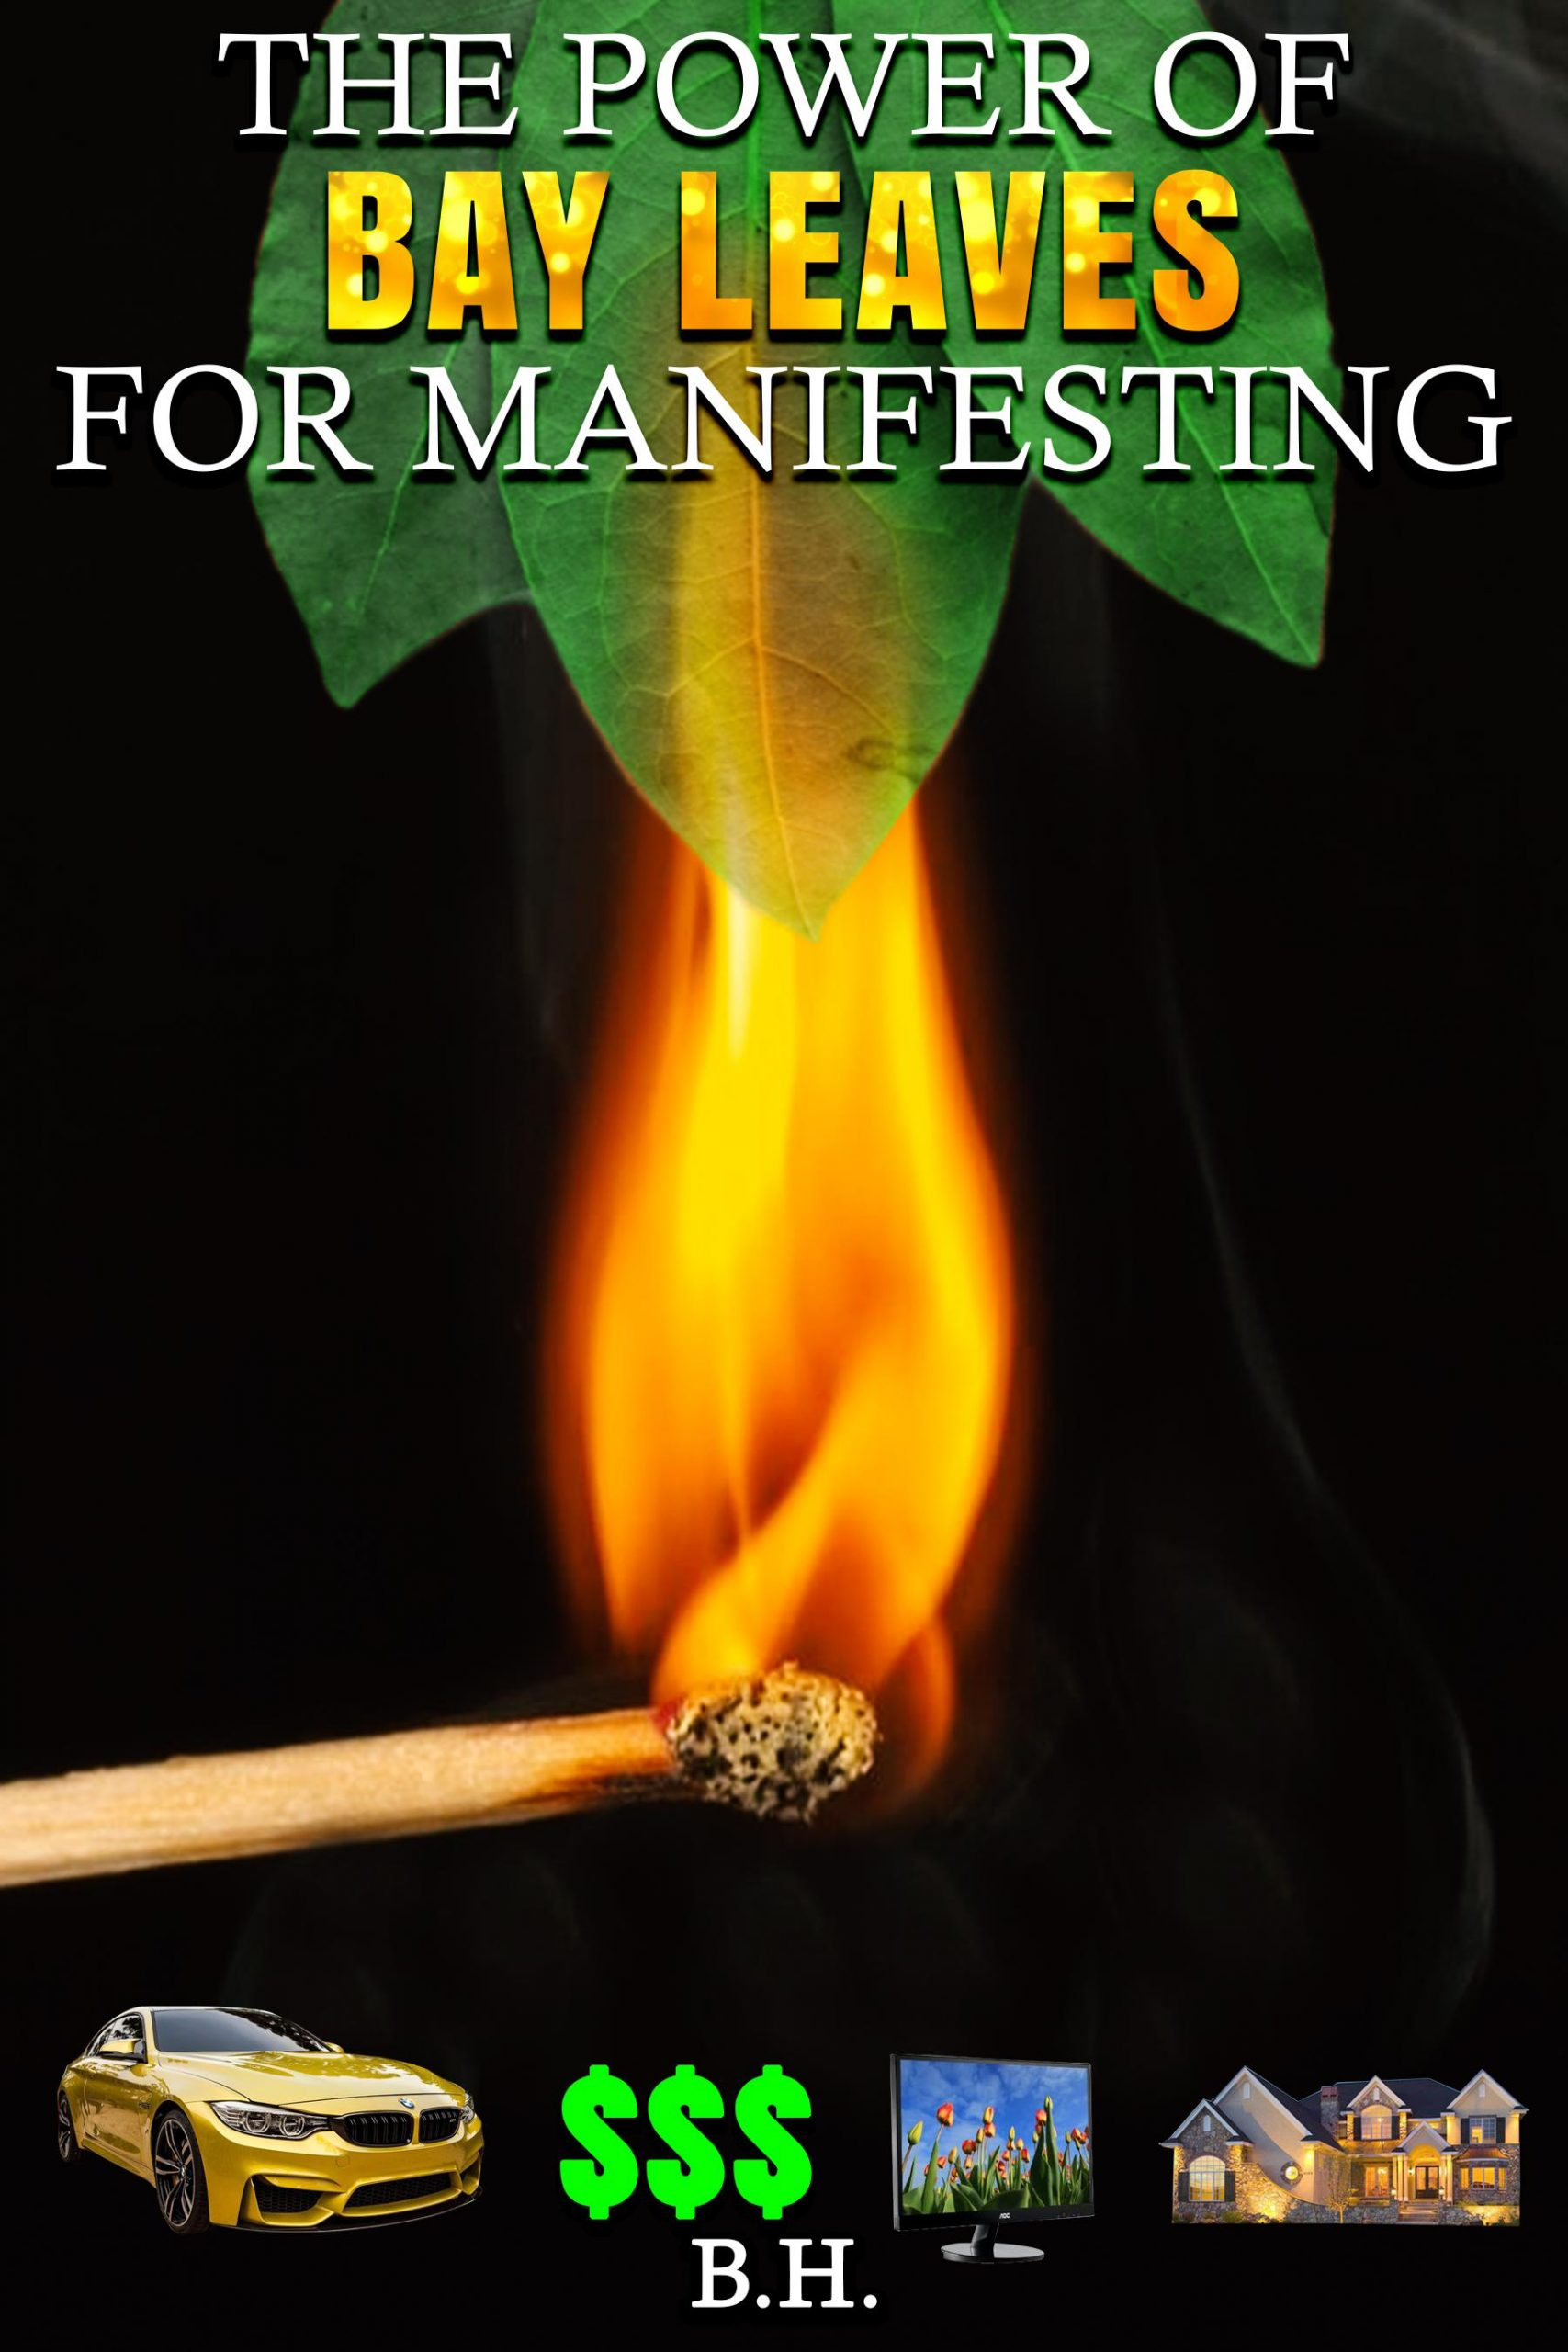 The Power Of Bay Leaves For Manifesting